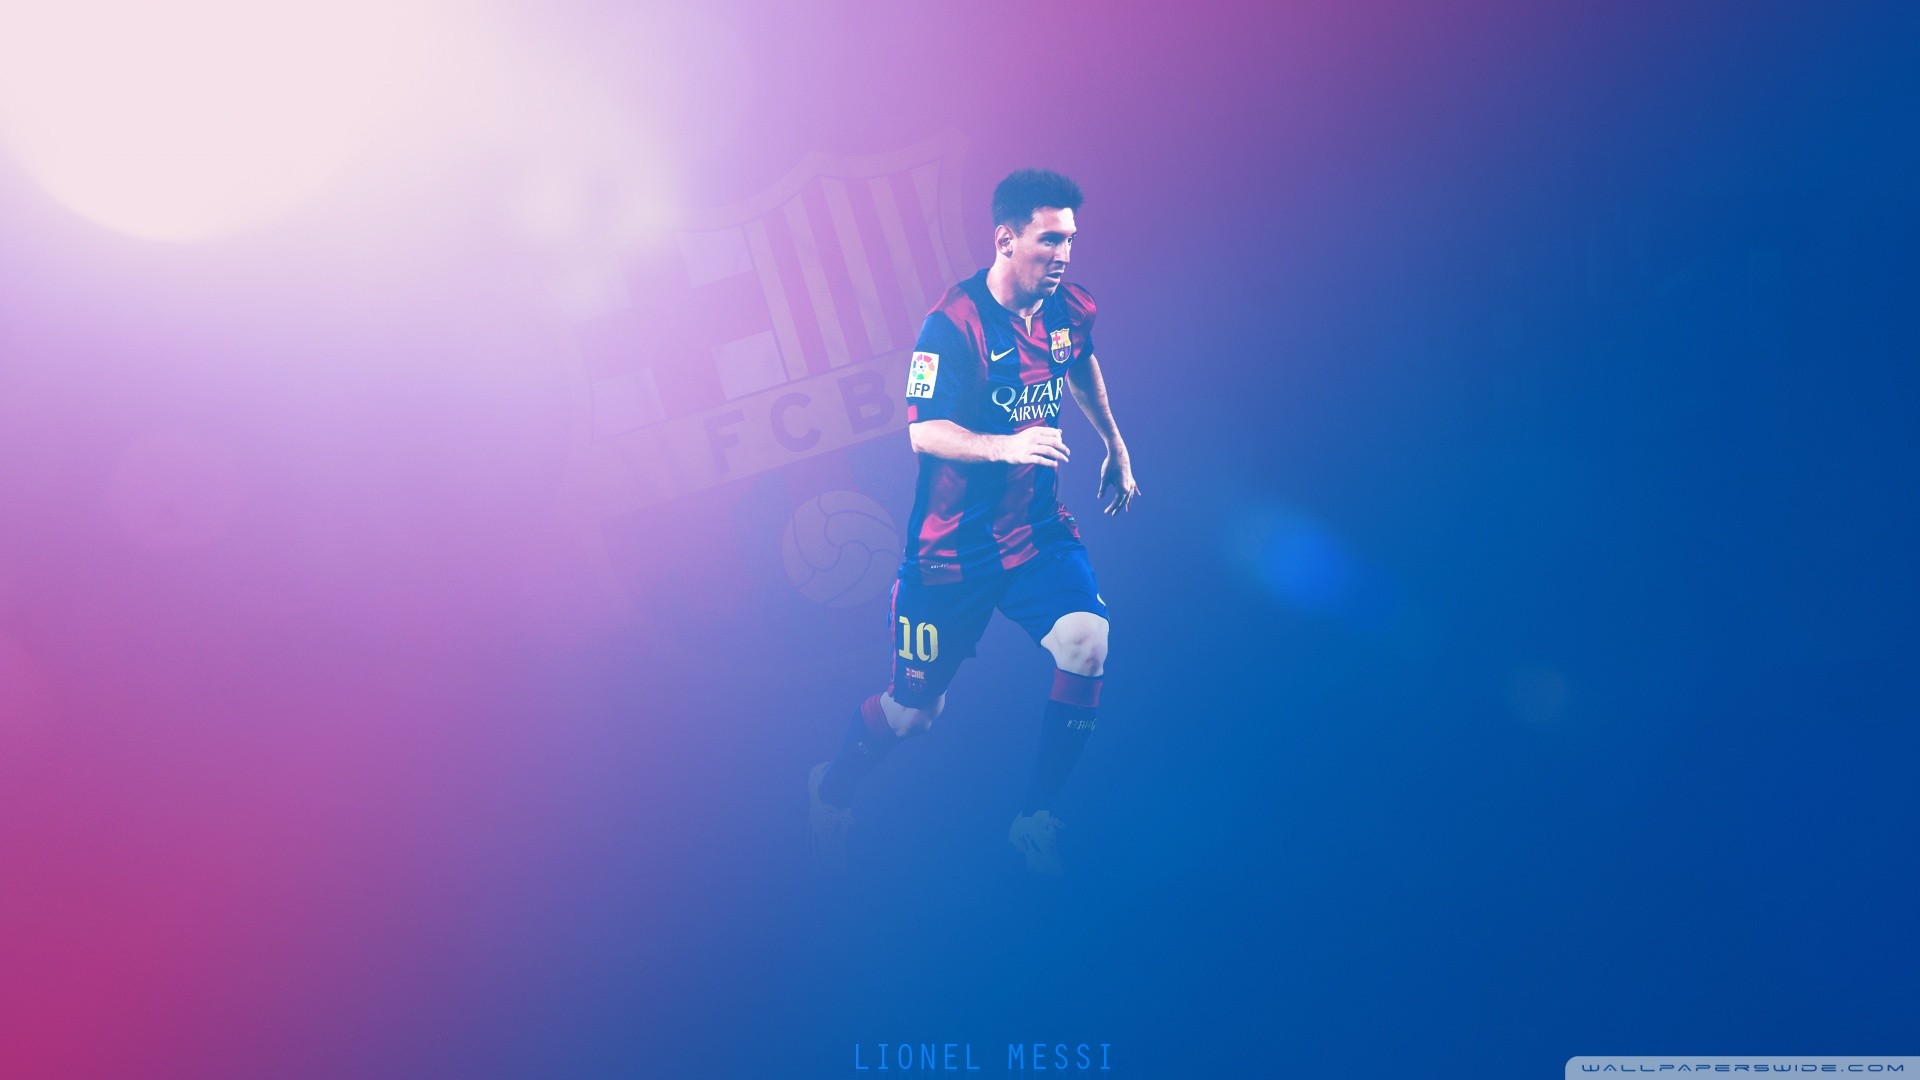 1920x1080 Lionel Messi - Barcelona HD Wide Wallpaper for Widescreen